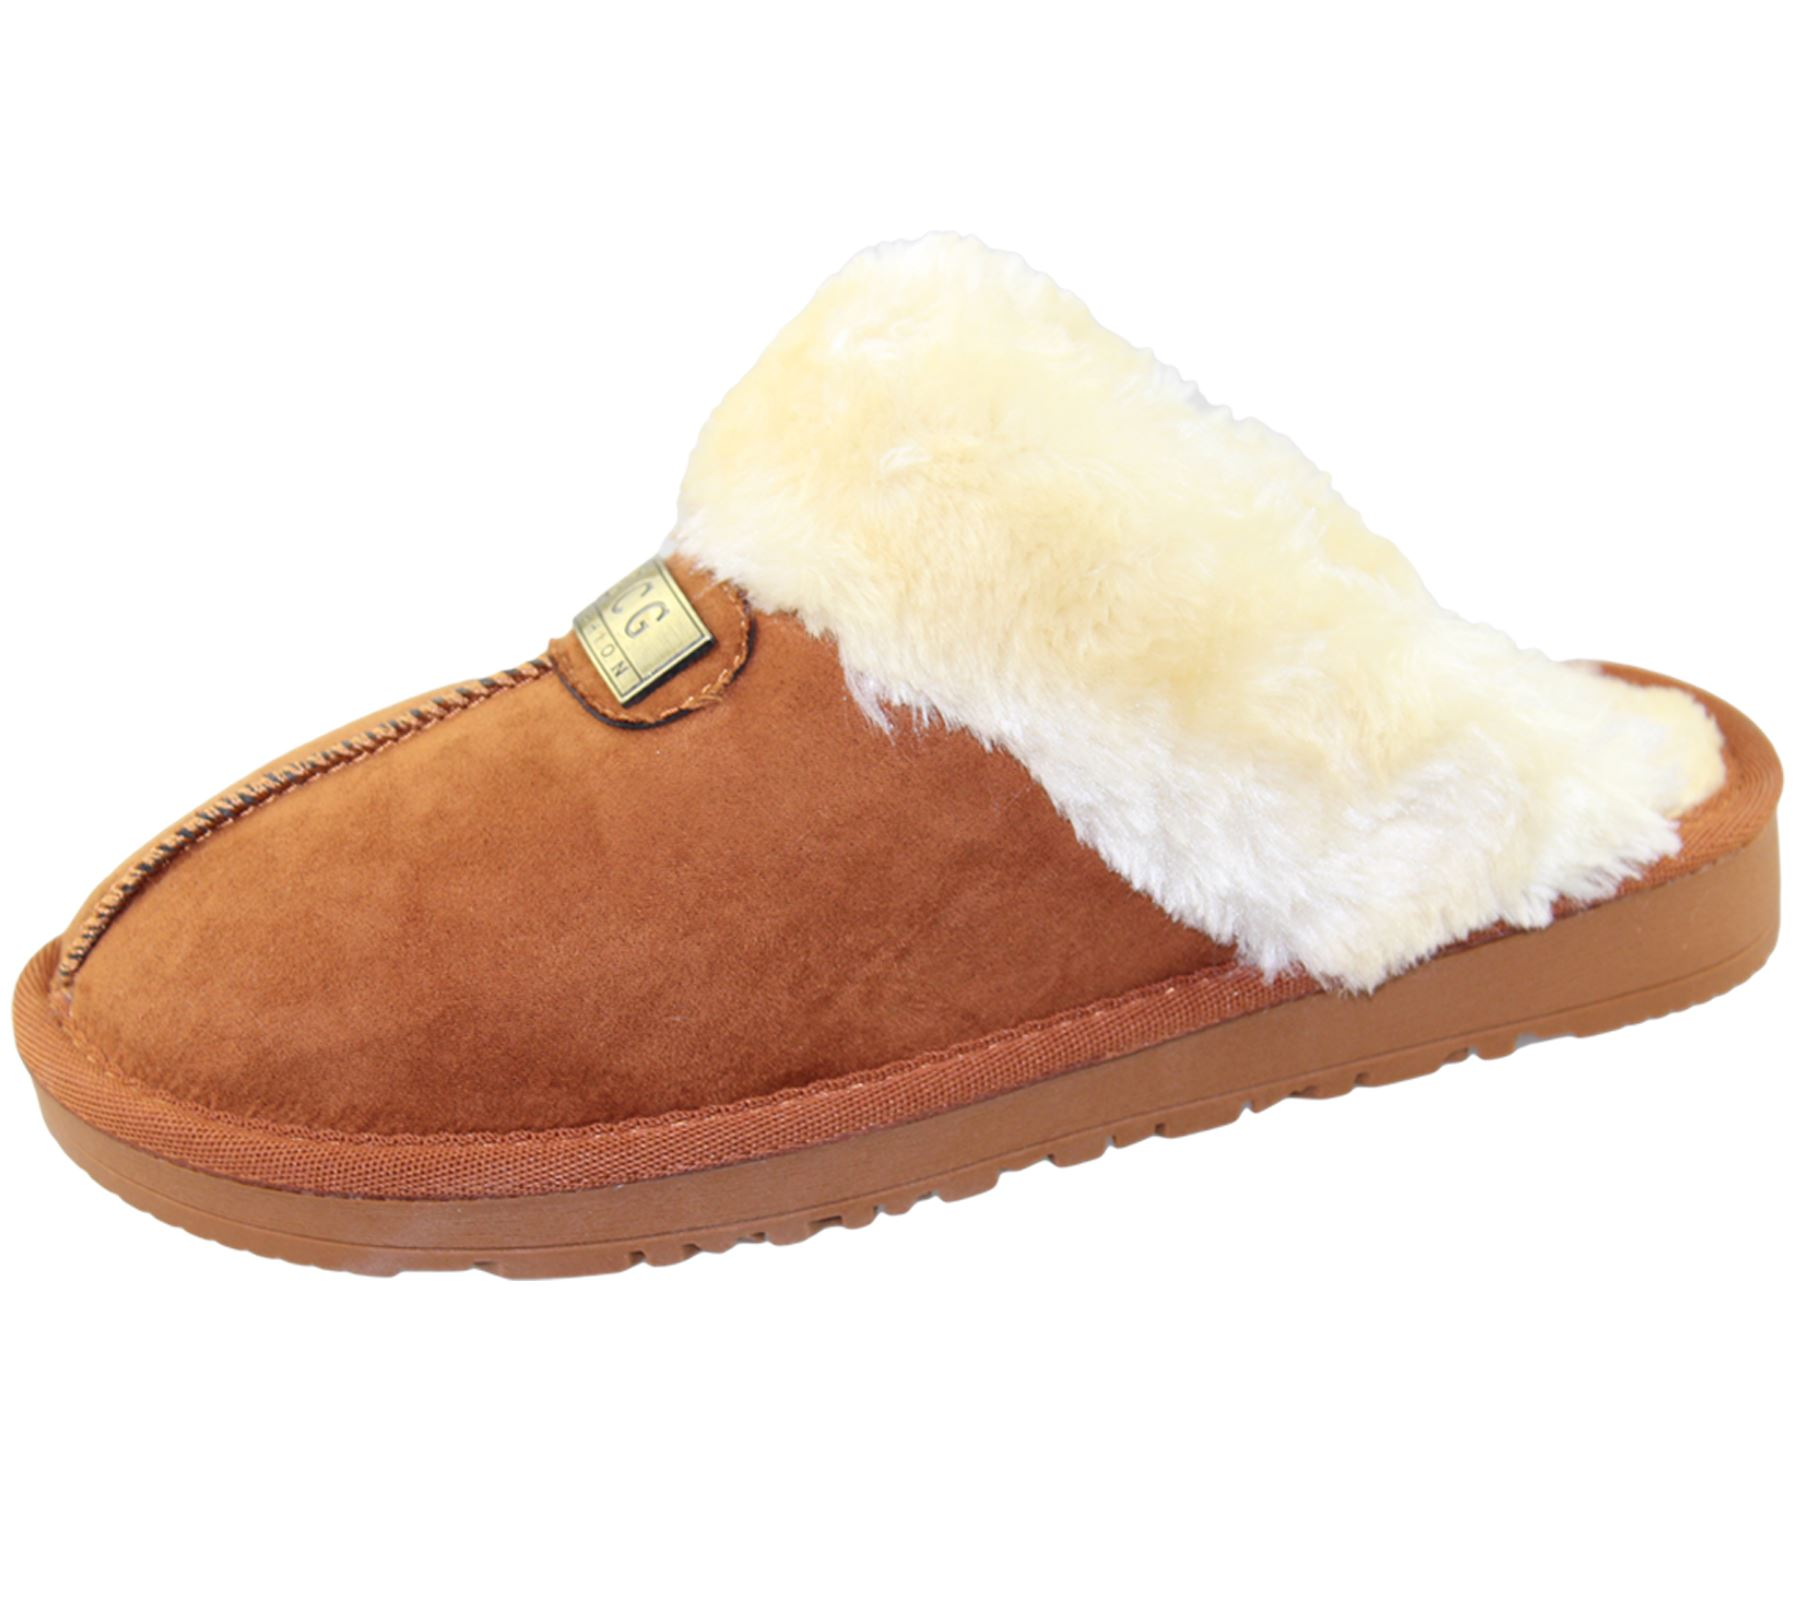 Womens-Fur-Lined-Slippers-Ladies-Mules-Non-Slip-Rubber-Sole-Shoes miniatura 22